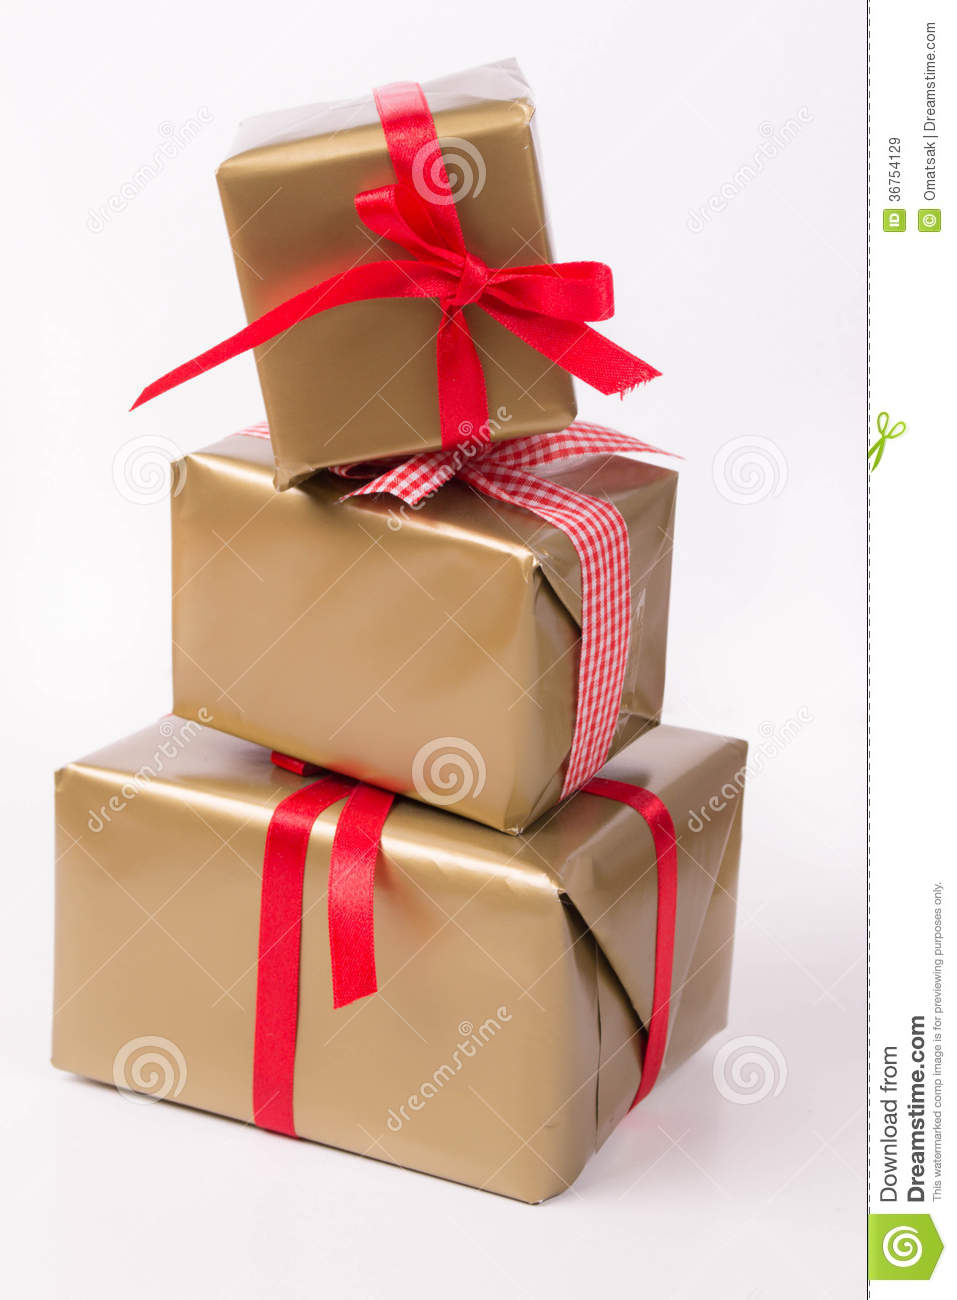 Stacked gift boxes royalty free stock images image